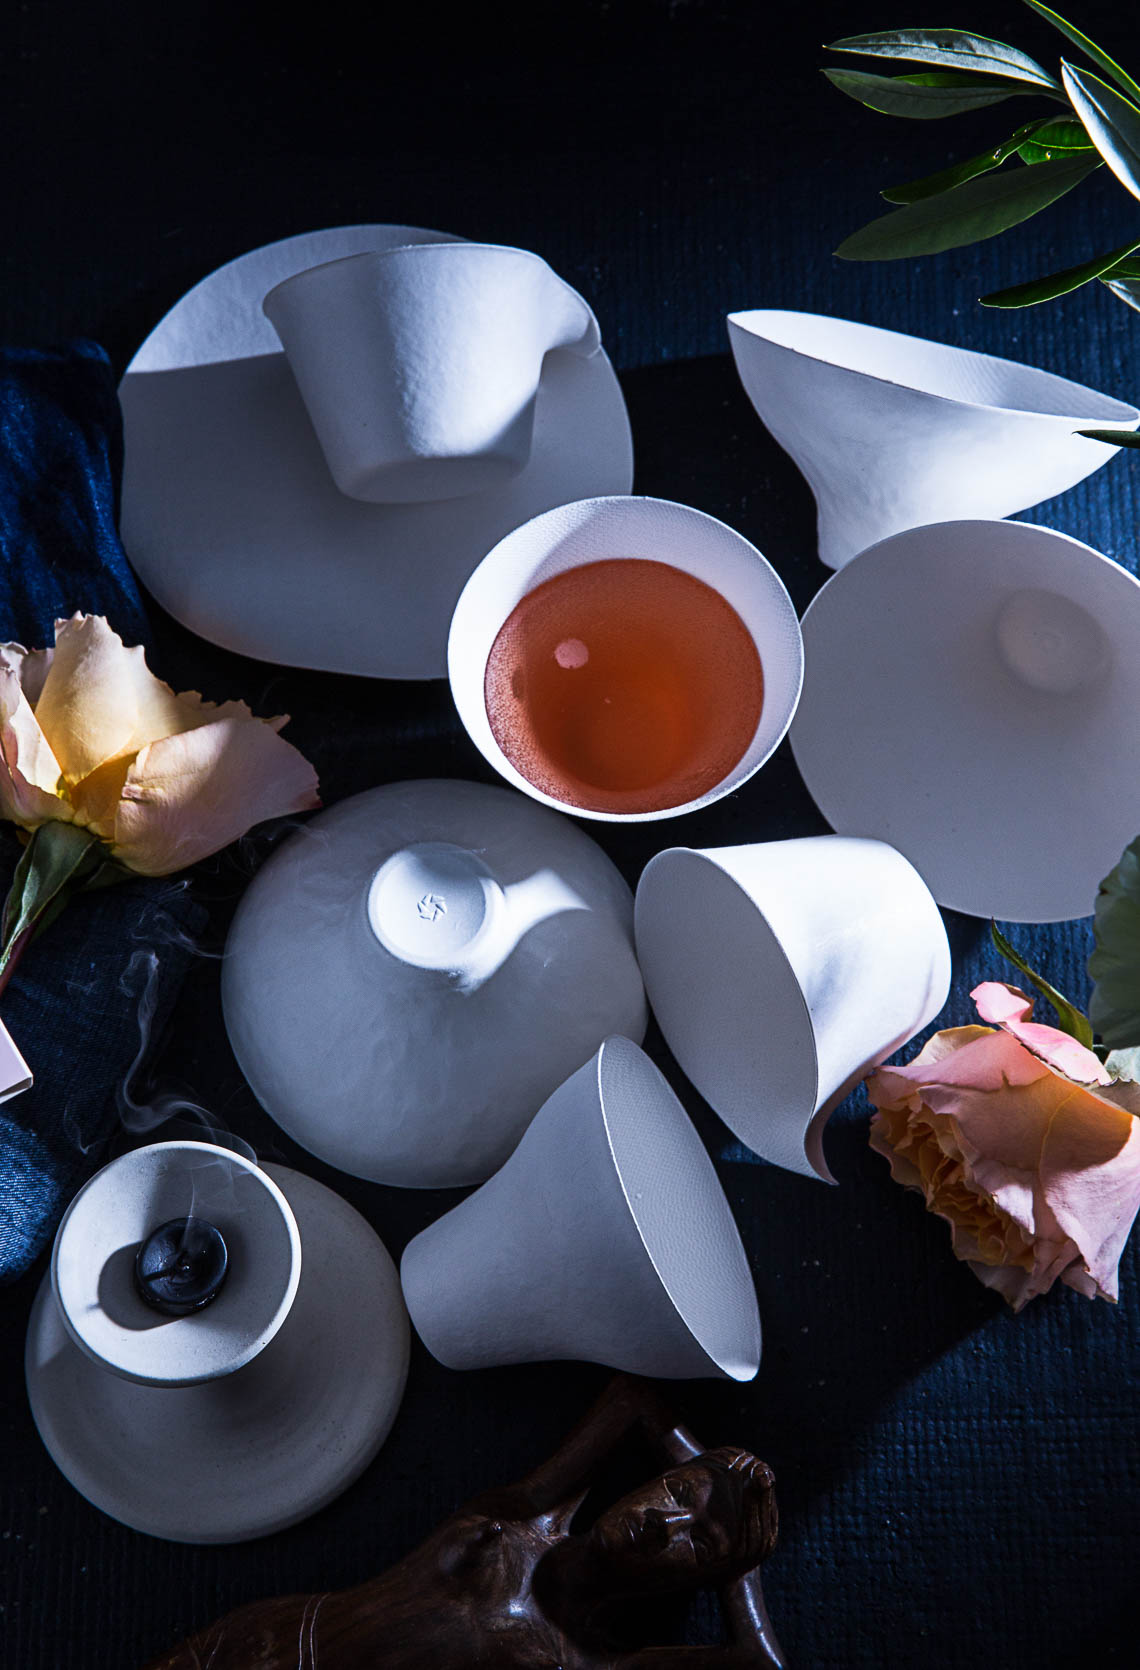 Wasara tableware and Rose